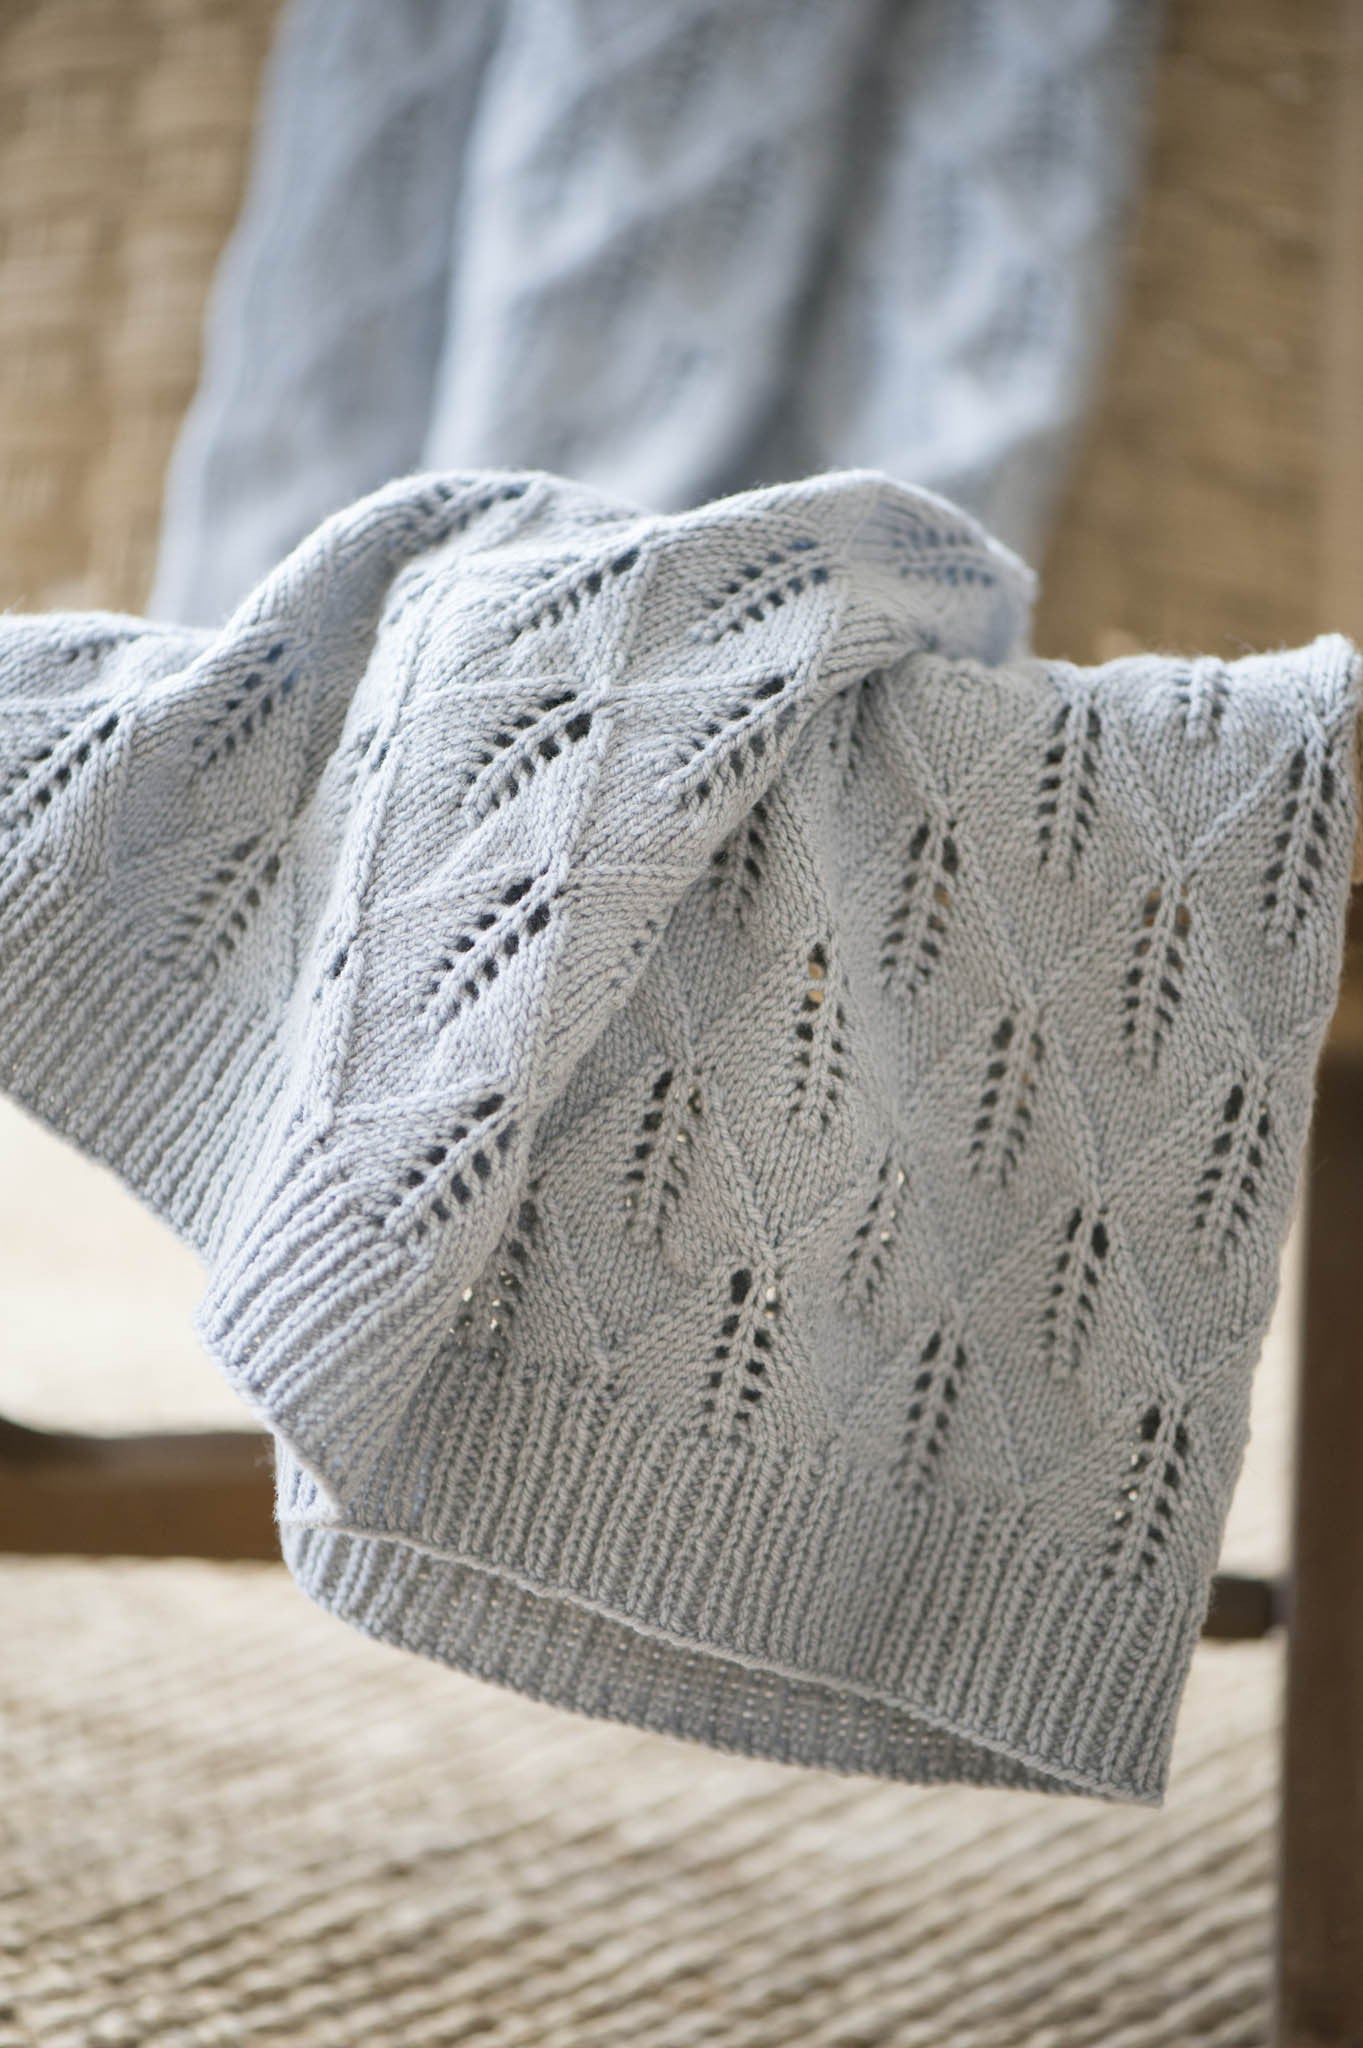 edelweiss blanket knitting pattern - Quince and Co